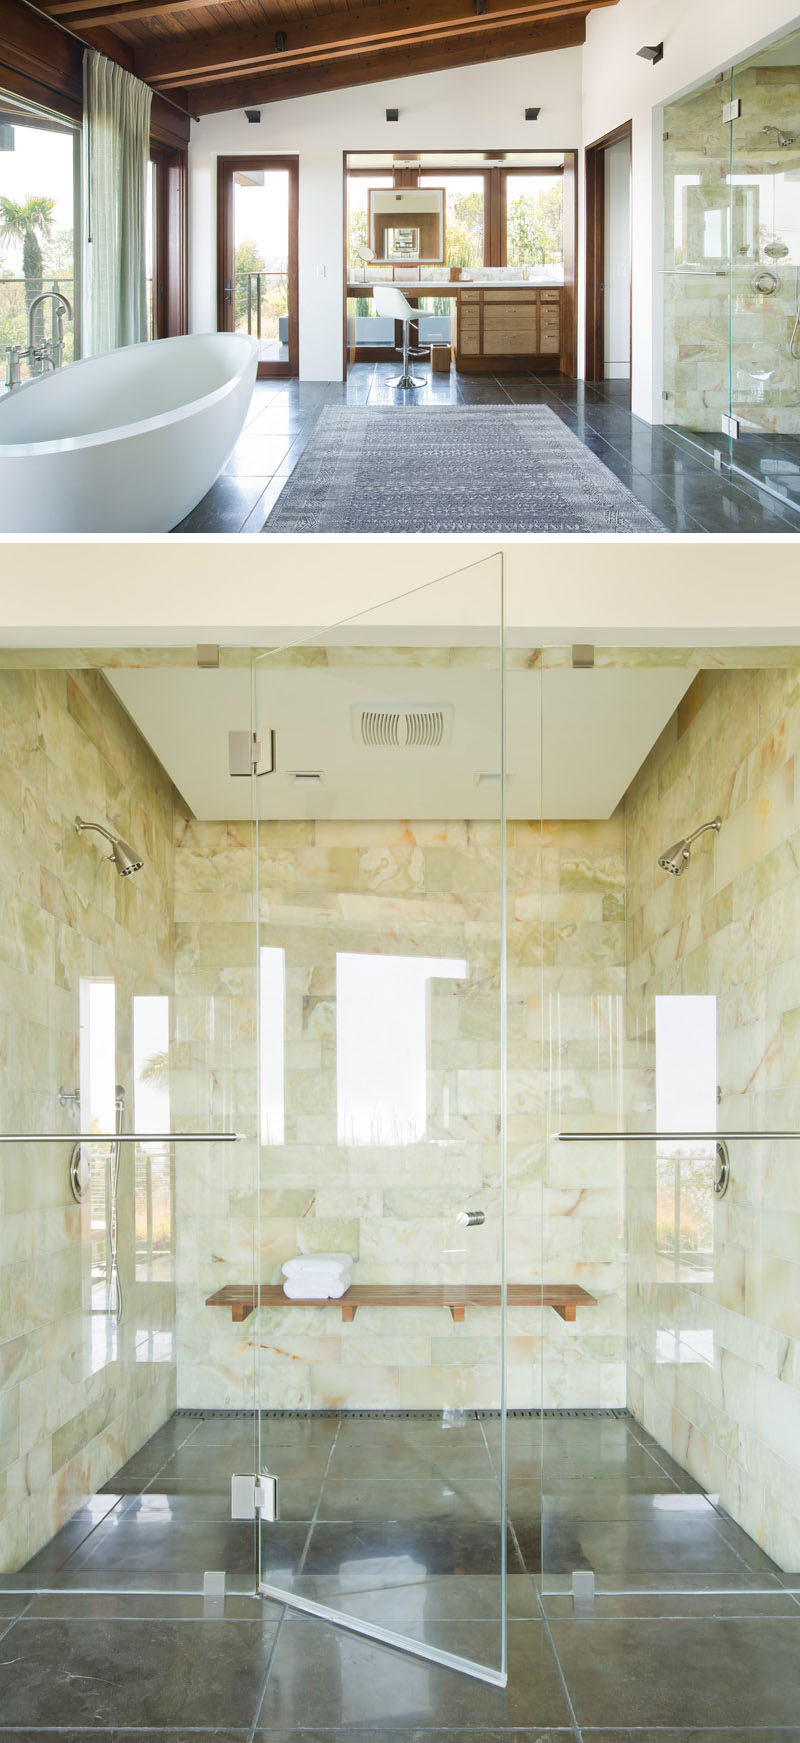 In this modern bathroom, there's a freestanding bathtub that sits in front of the windows, a make-up vanity and a large two-person walk-in shower with a wood bench. #TwoPersonShower #ModernBathroom